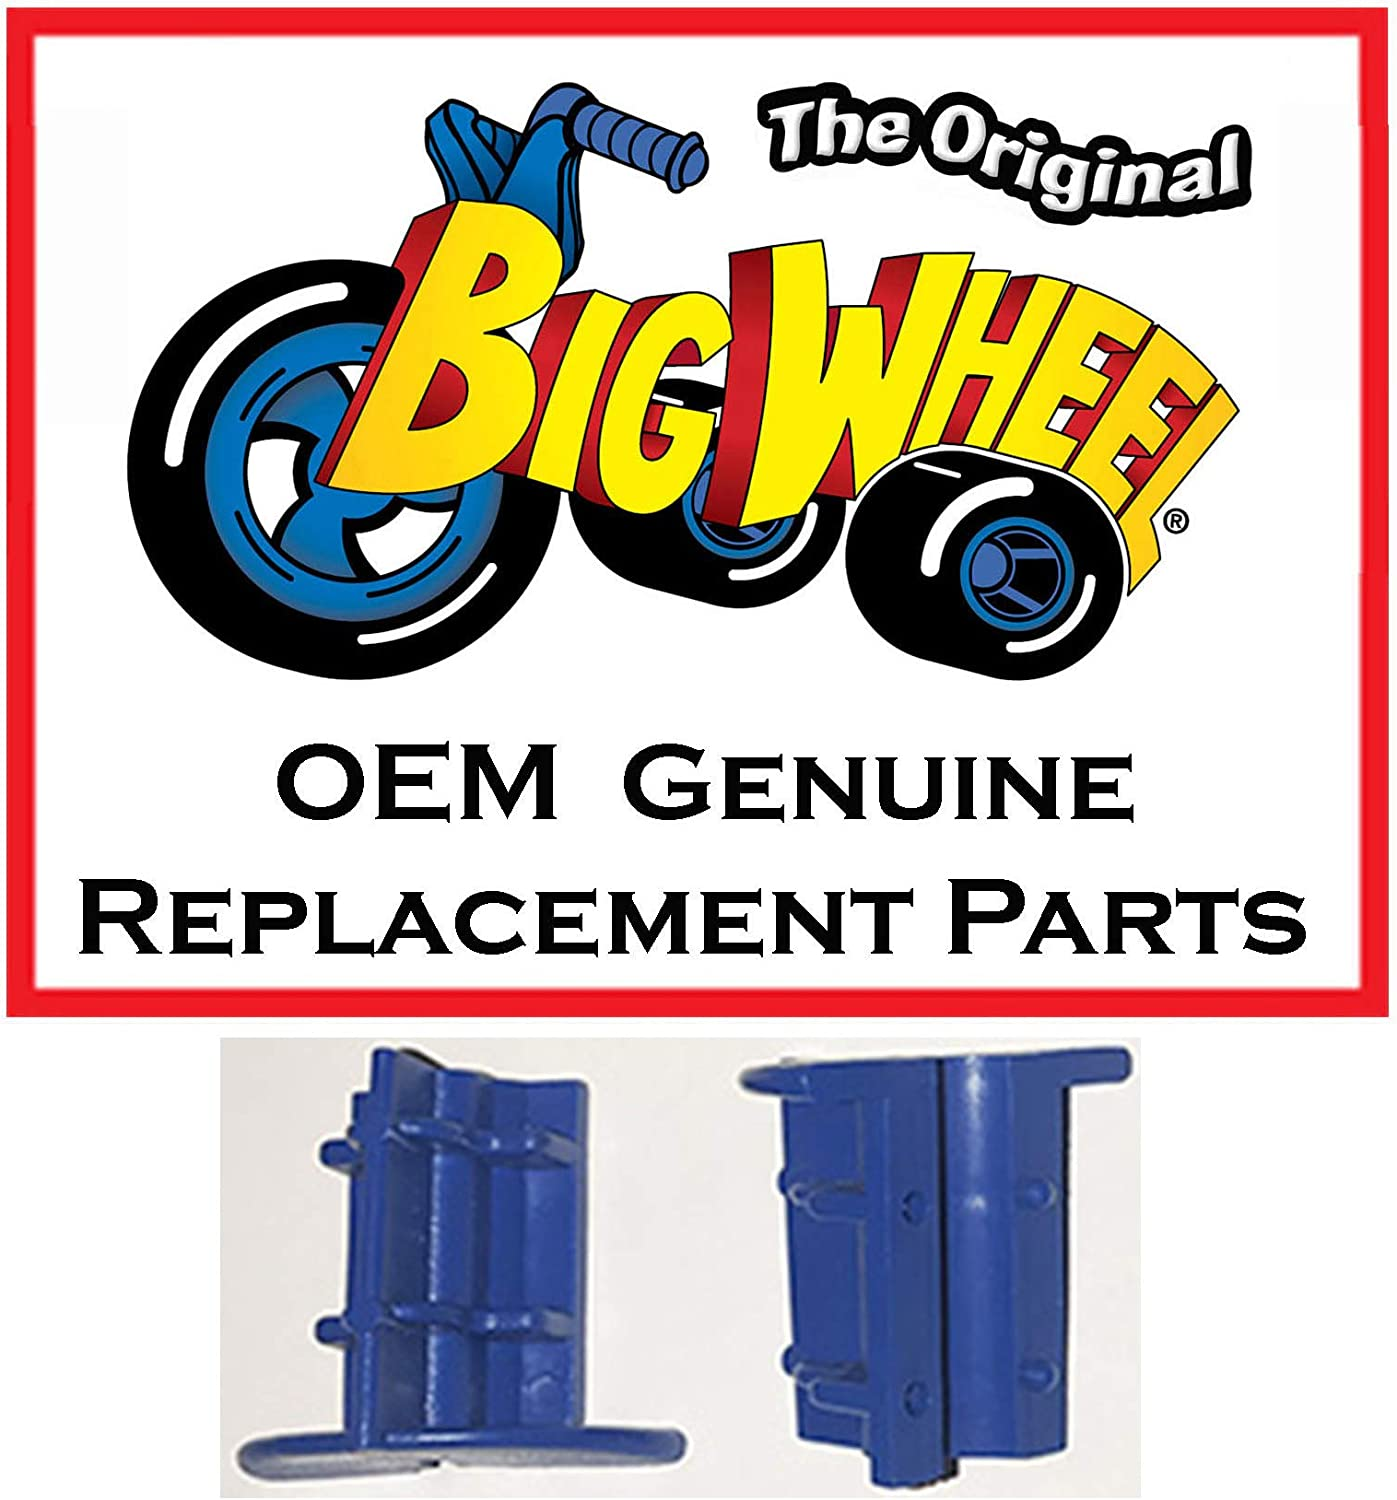 Blue Wheel Drive Inserts The Original Classic Big Wheel Set of 2 Wheel Inserts Replacement Parts